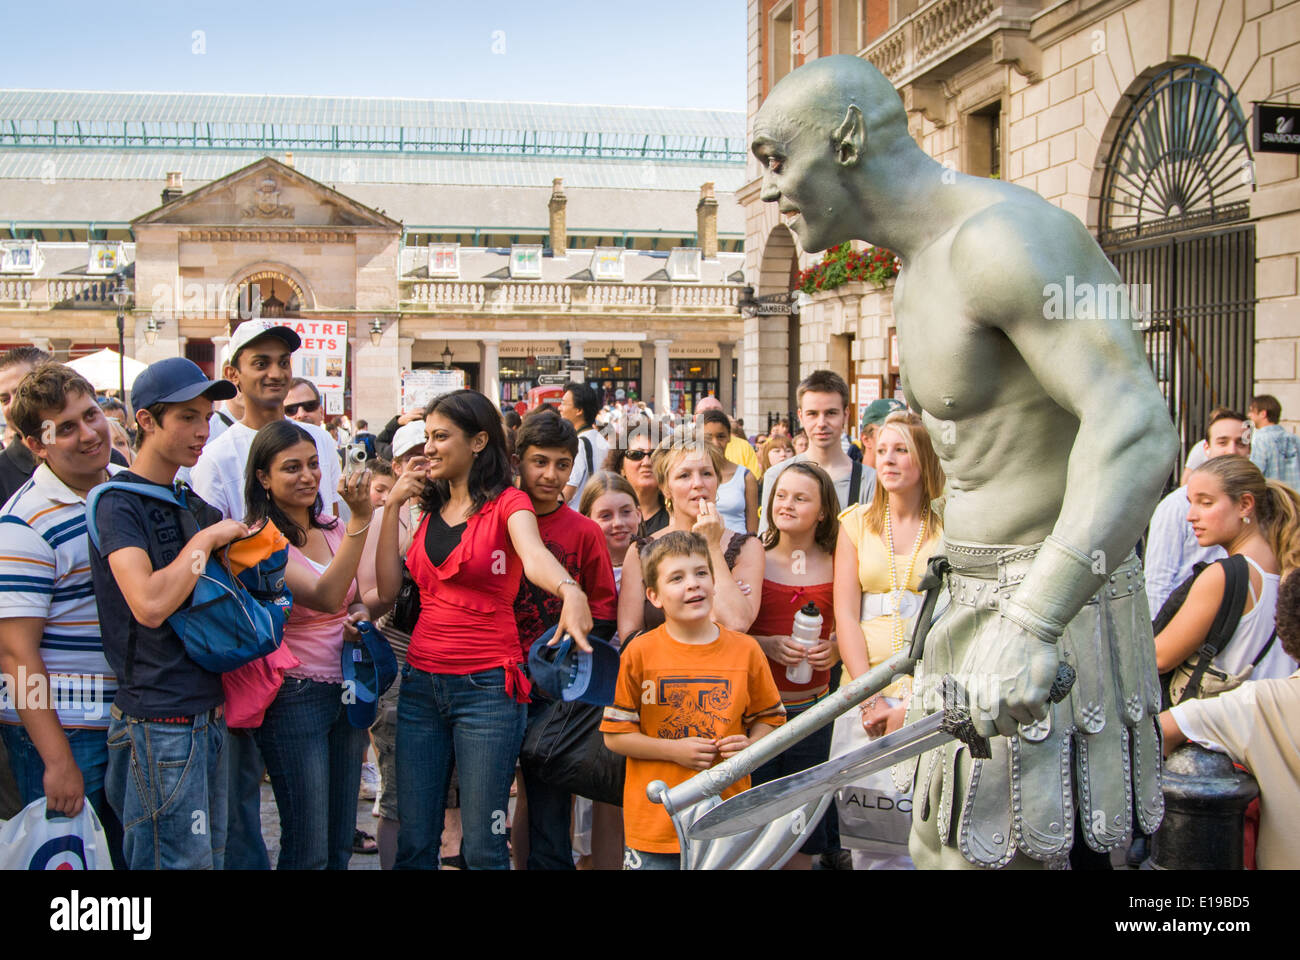 Mime artist Duncan Meadows as a giant green human statue performing for tourists at Covent Garden, London, England, UK - Stock Image